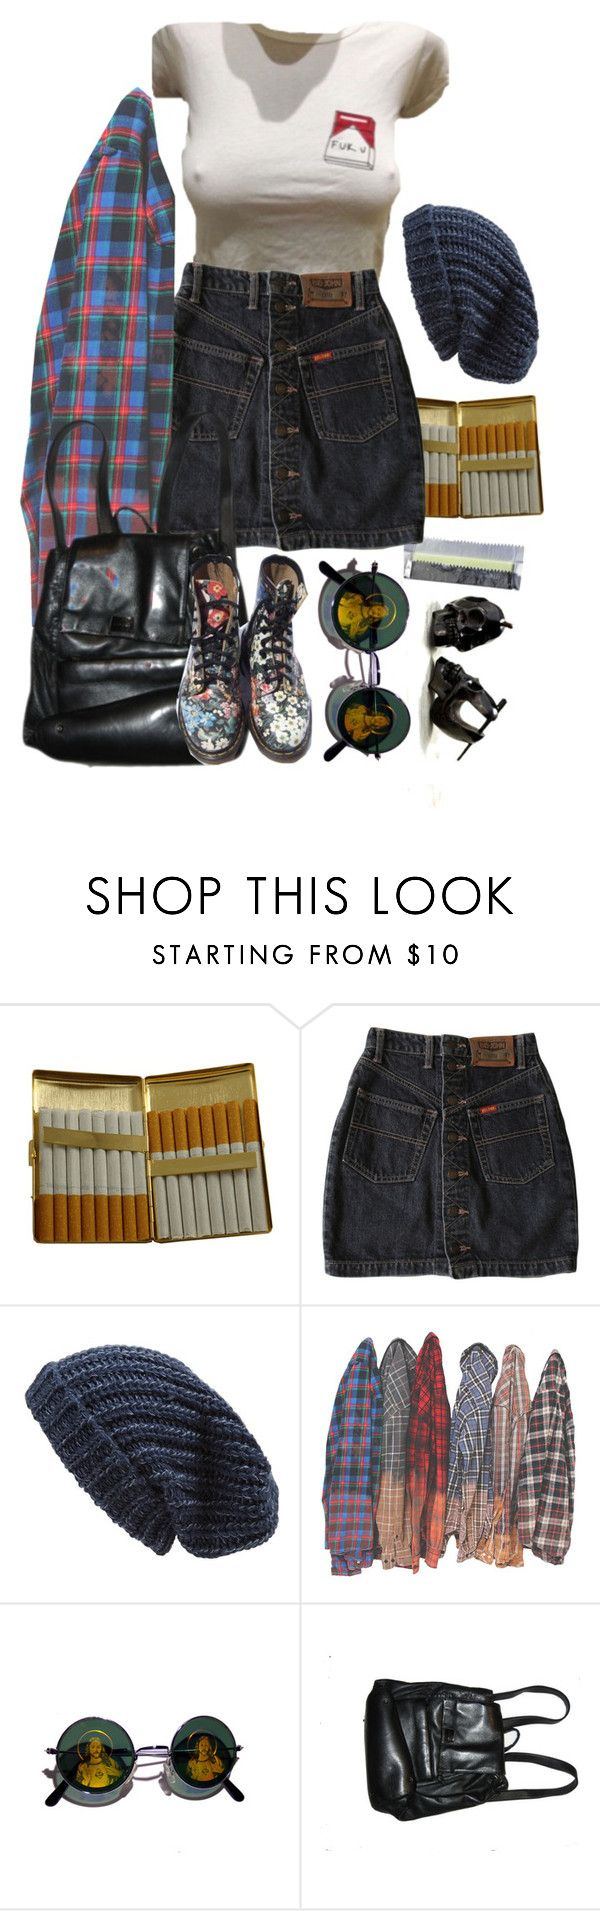 """""""it's getting hard to be someone"""" by urmypoison ❤ liked on Polyvore featuring KING, G1, Phase 3, Retrò, Perlina and Dr. Martens"""